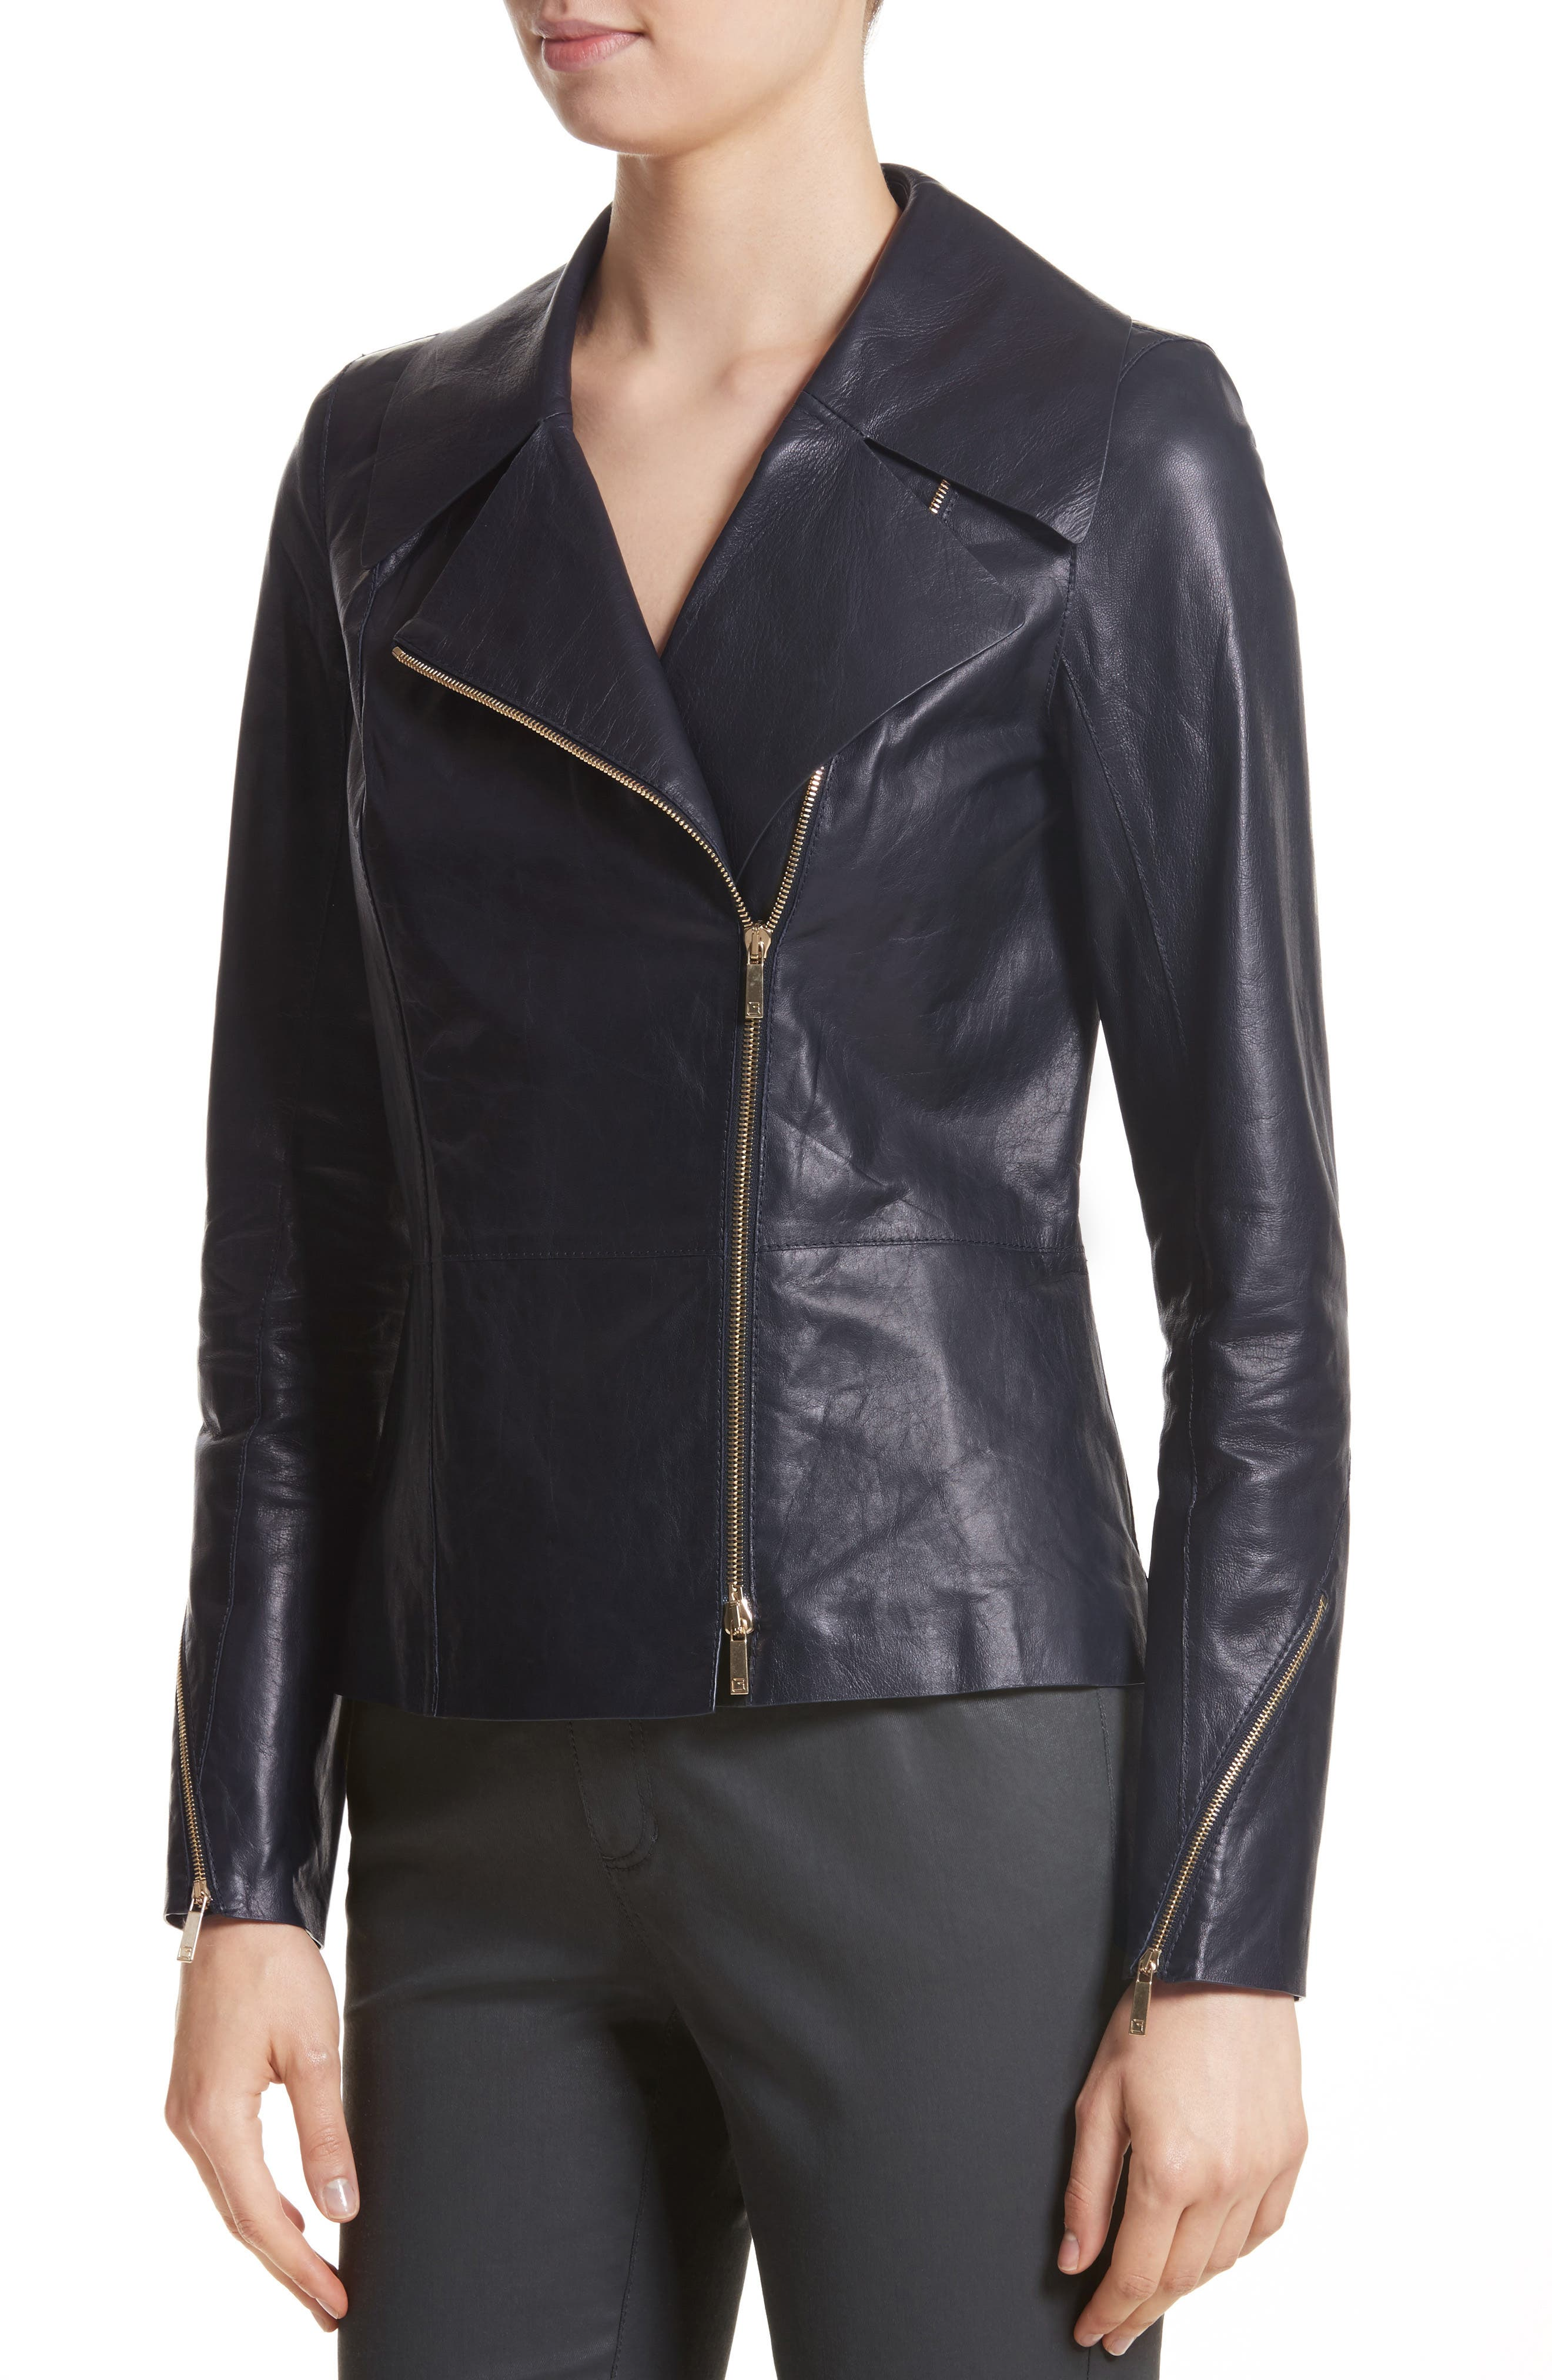 Kimbry Leather Jacket with Removable Genuine Rex Rabbit Fur Collar,                             Alternate thumbnail 4, color,                             479